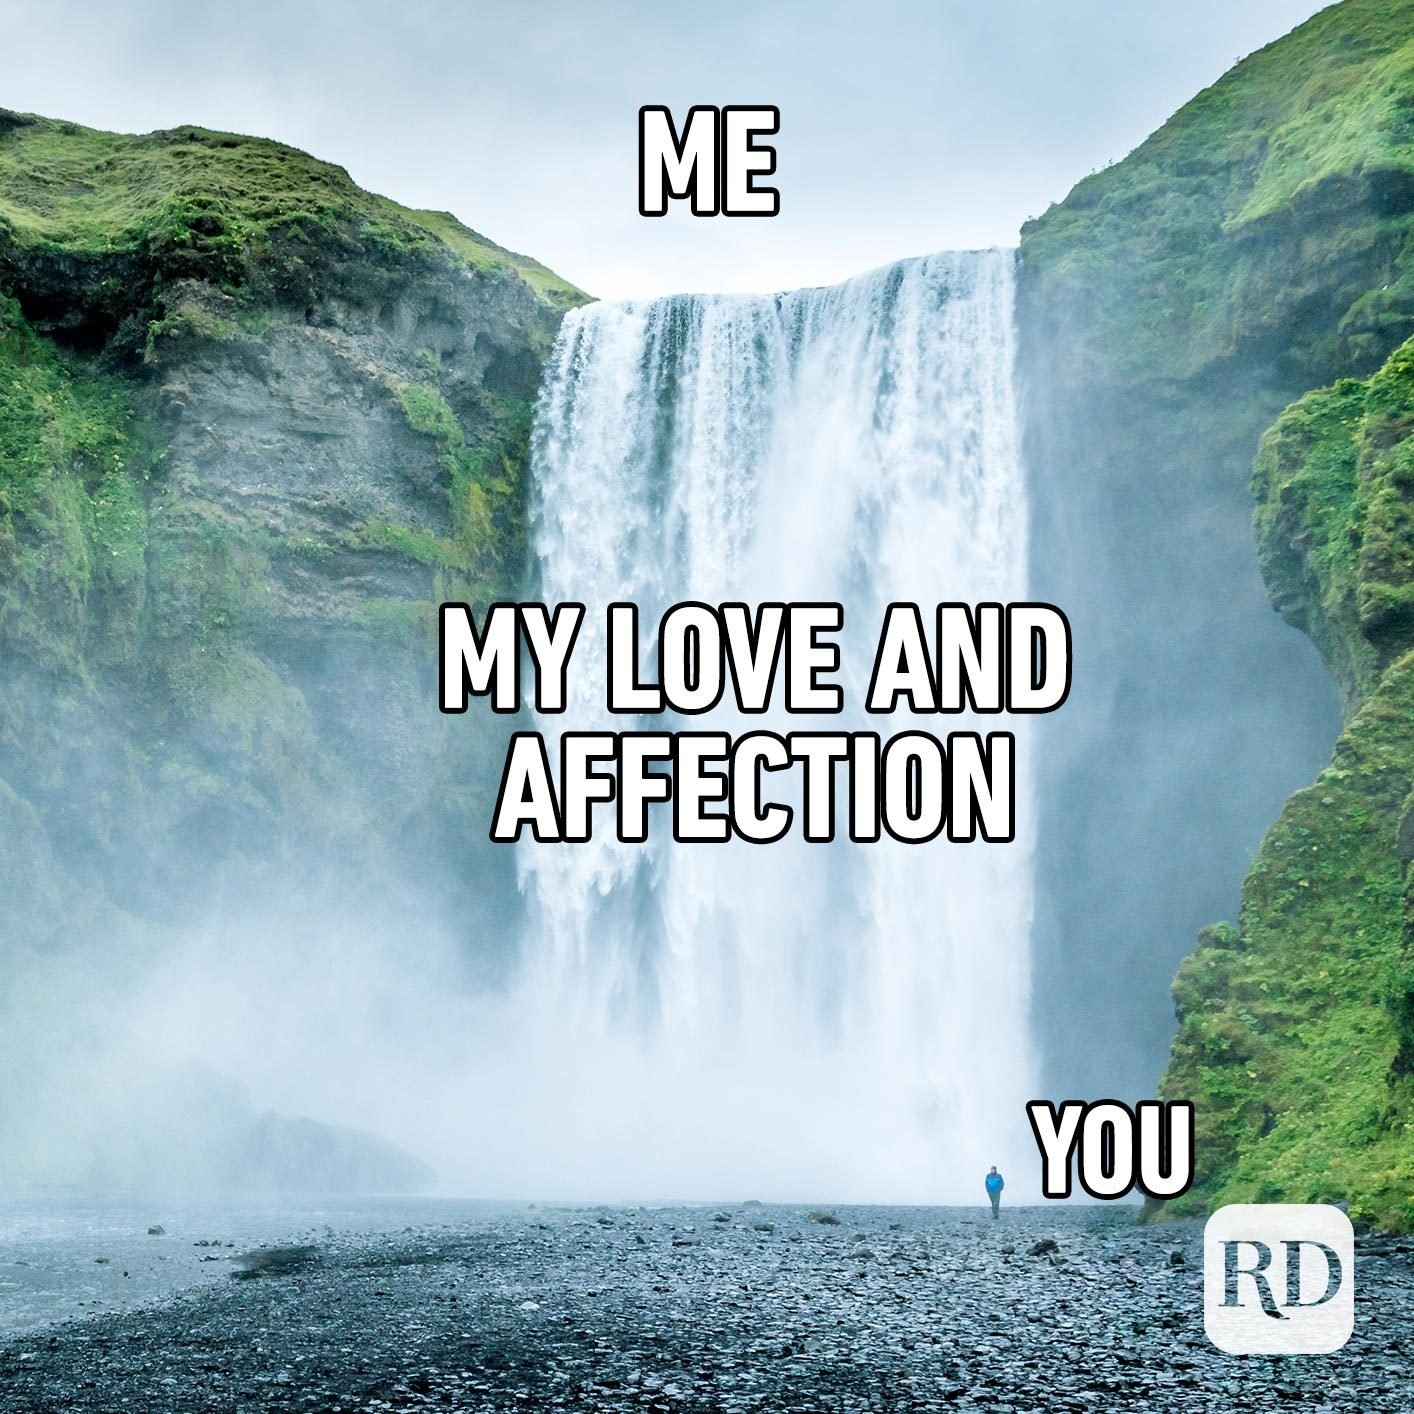 Waterfall. Meme text: Me (written above the waterfall) My love and affection (written on top of or next to the waterfall) You (Pointing to person)